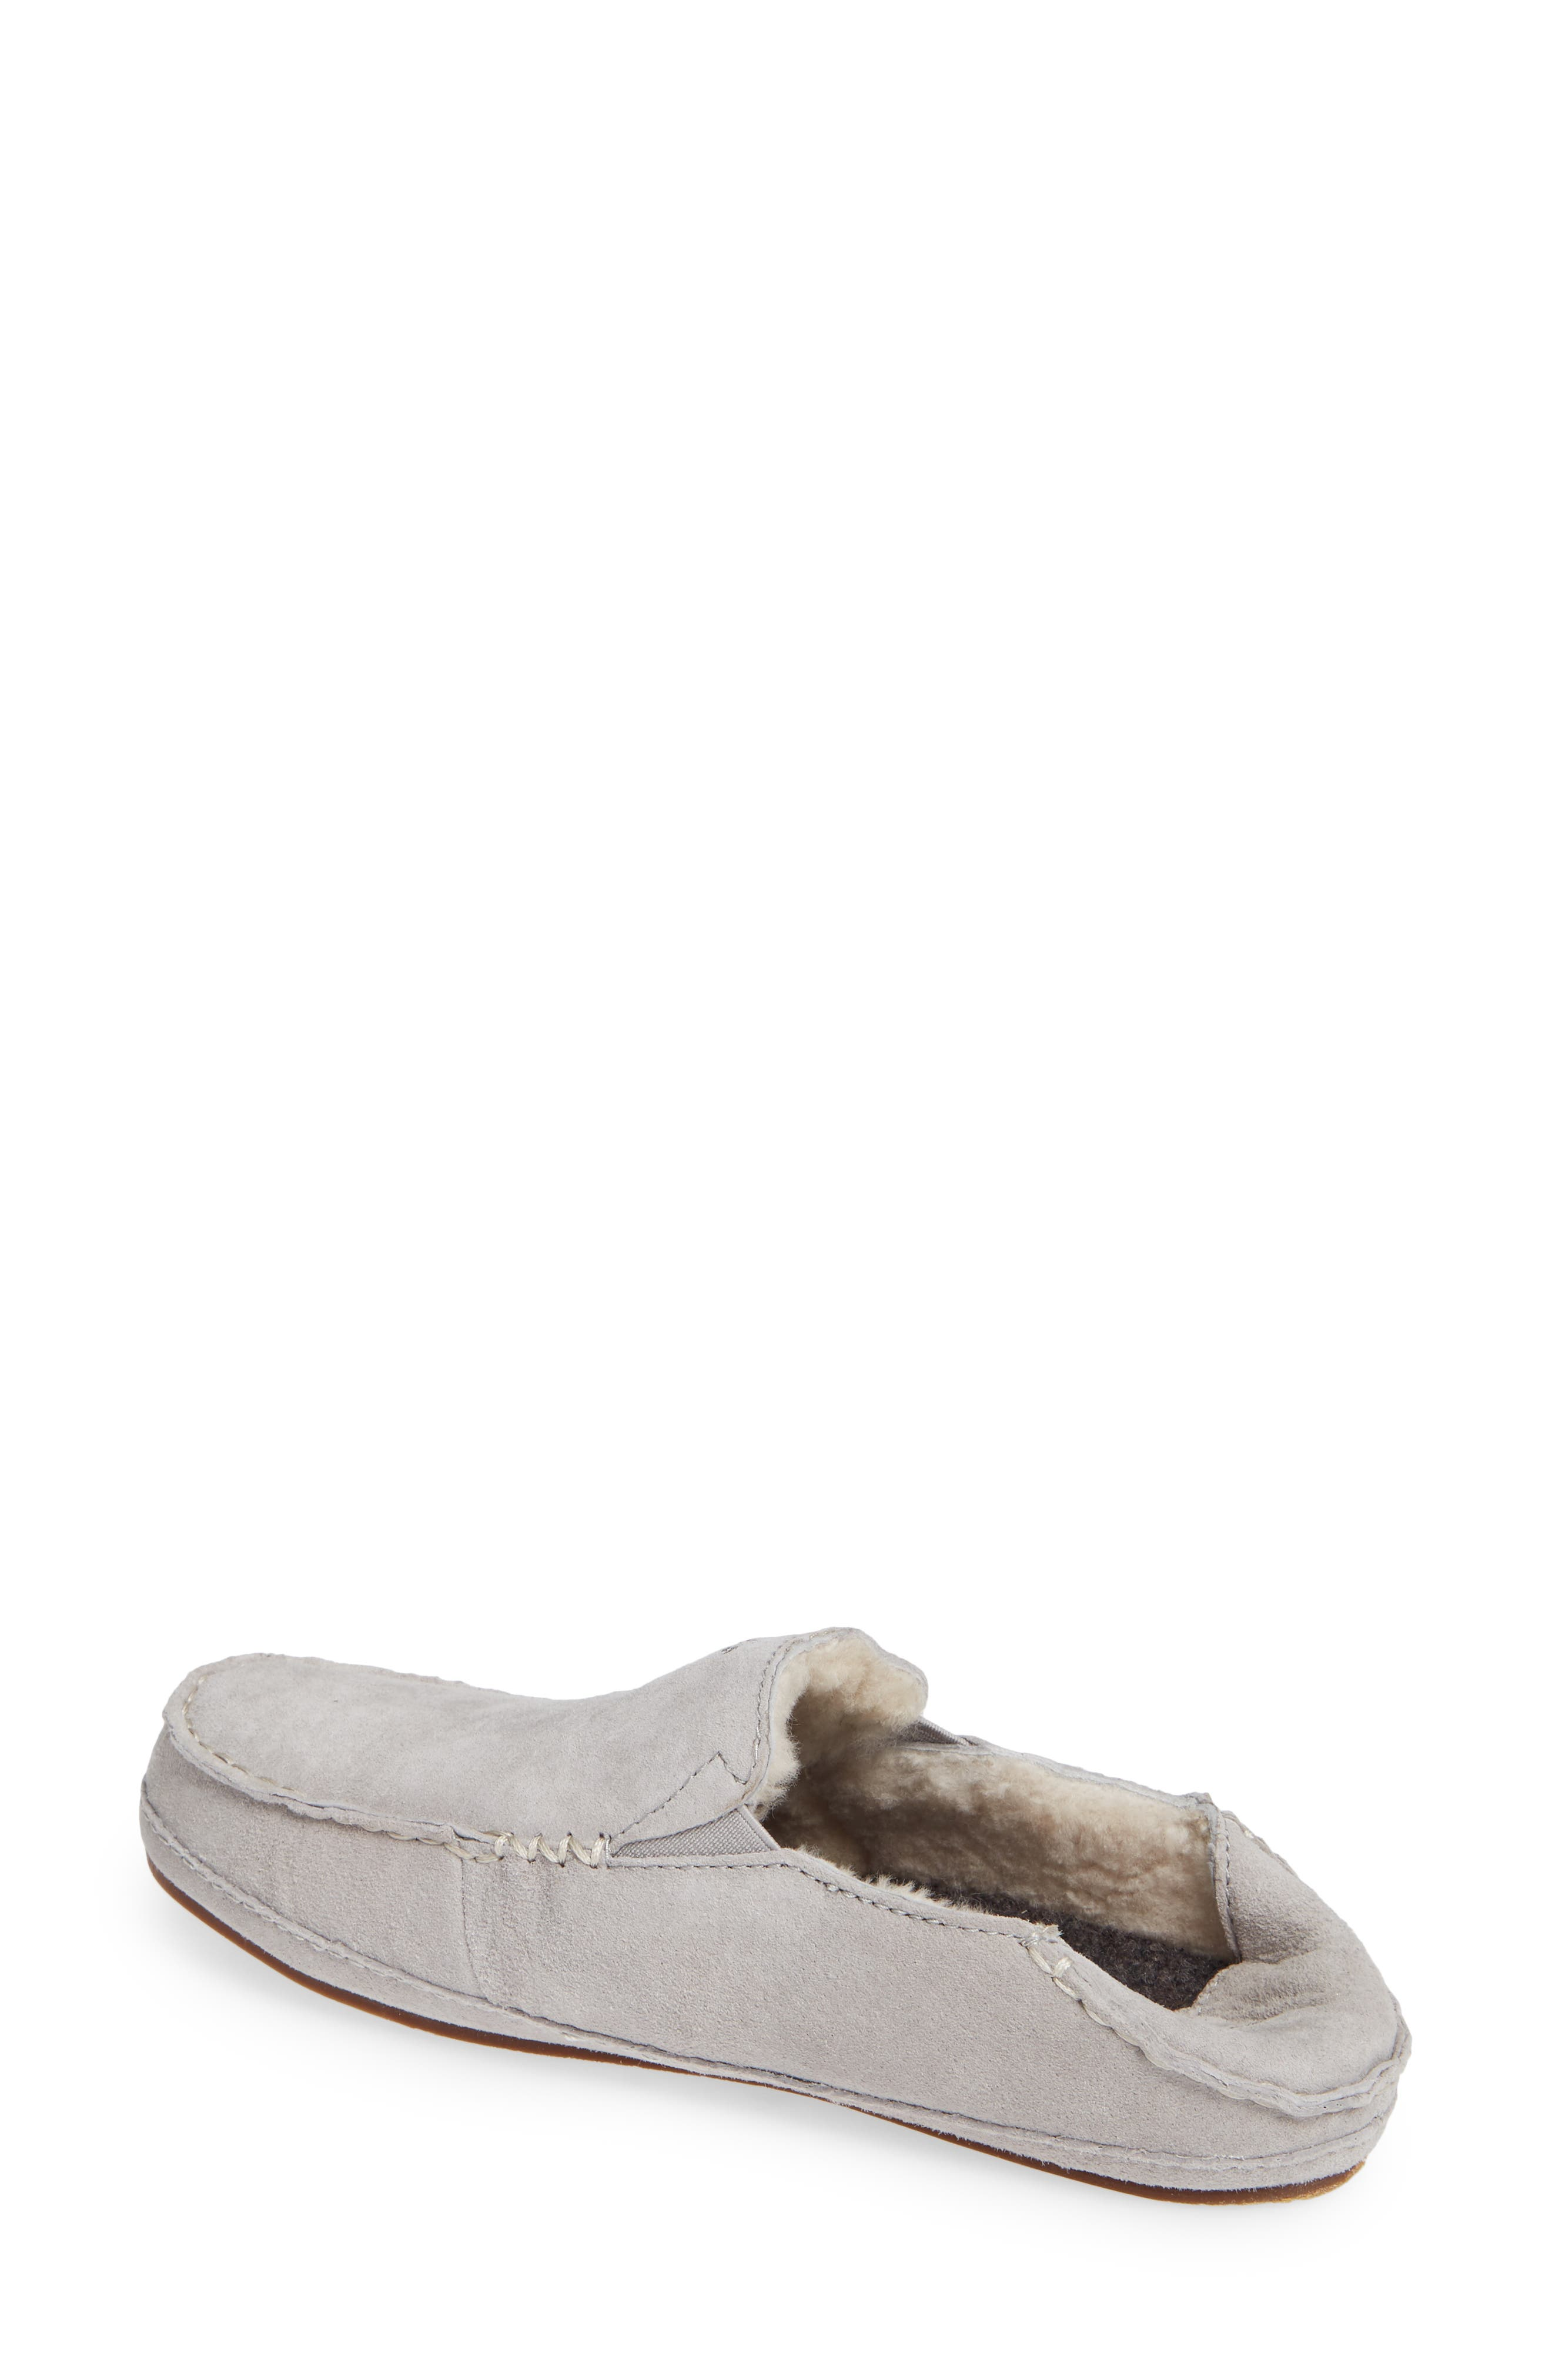 Nohea Nubuck Slipper,                             Alternate thumbnail 3, color,                             PALE GREY/ PALE GREY LEATHER